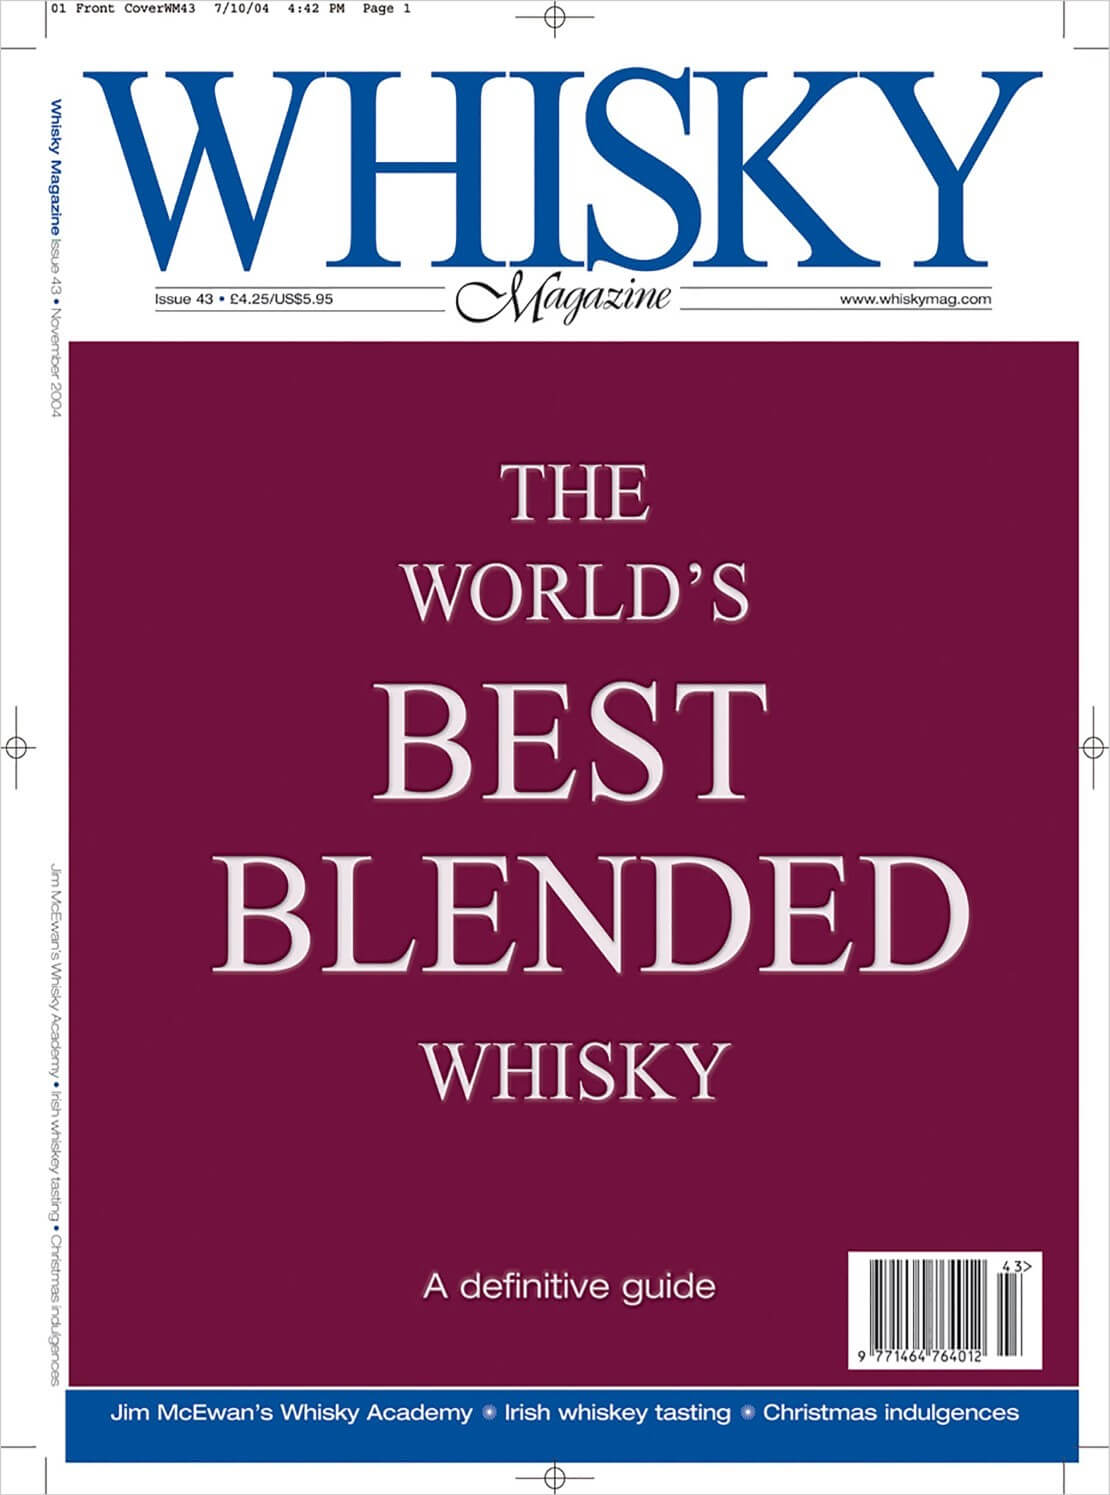 The World's best blended whisky Jim McEwans's Whisky Academy Irish whiskey tastings Christmas indulgences